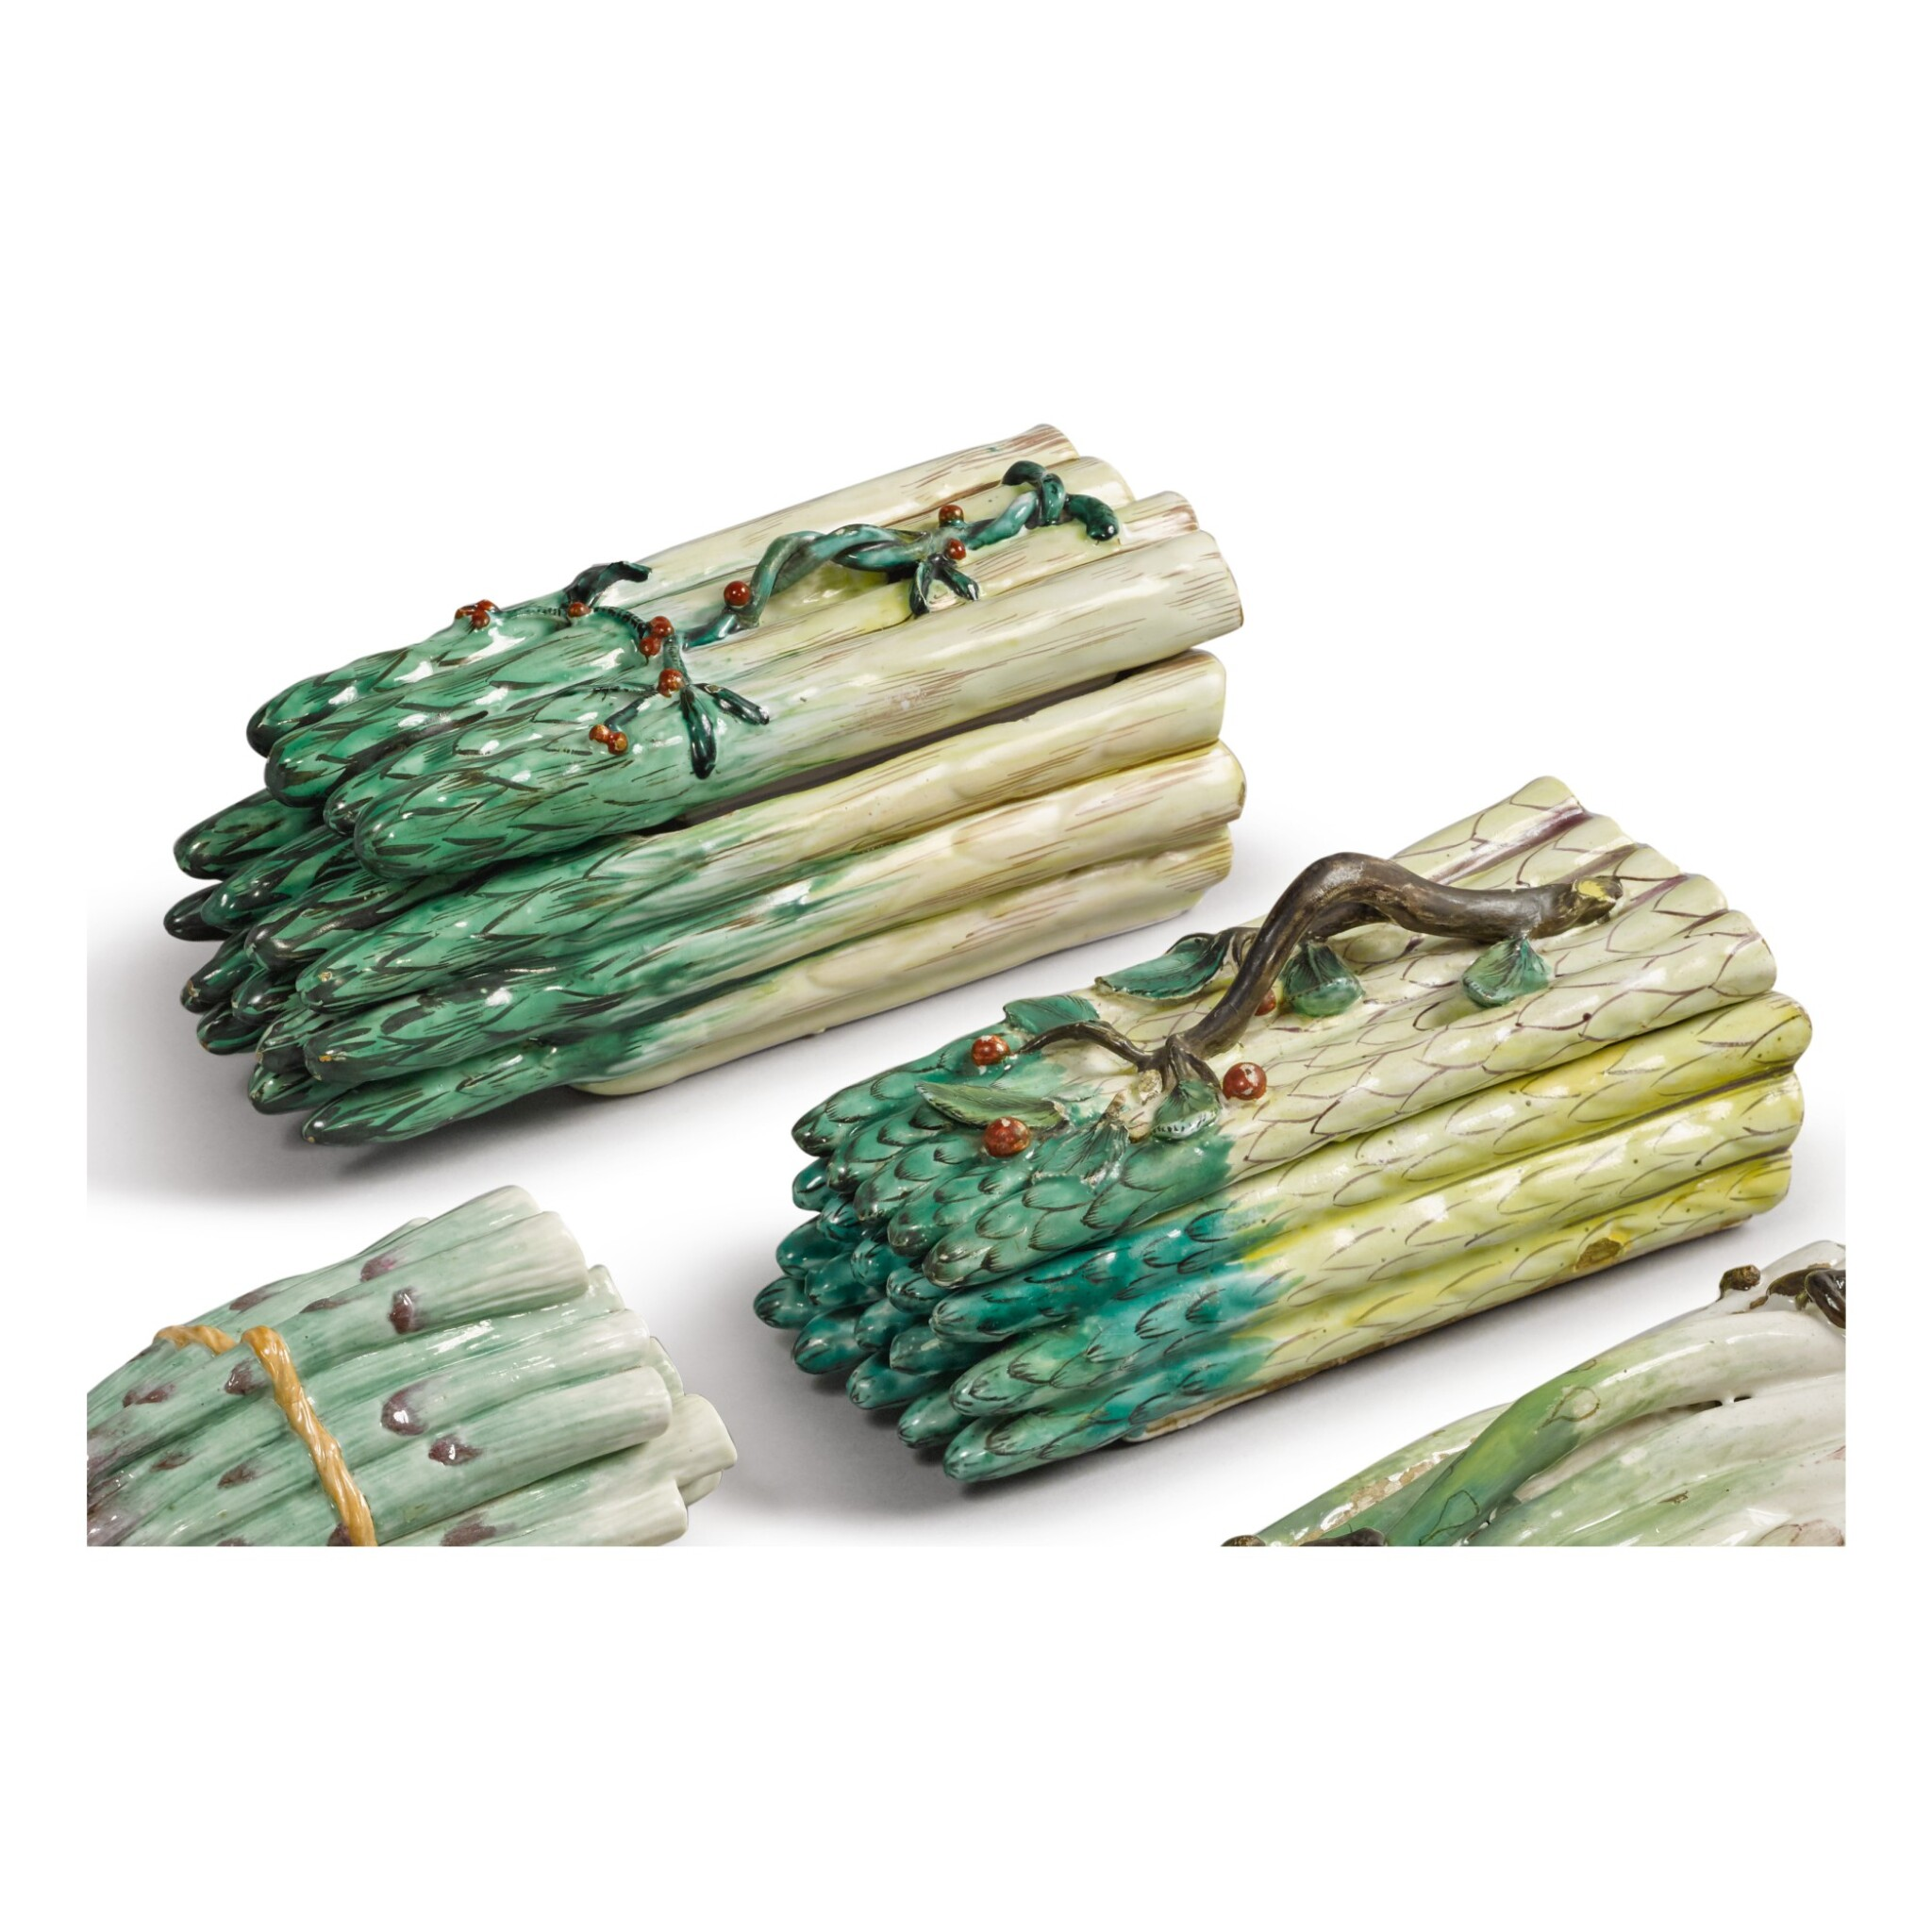 TWO CONTINENTAL FAIENCE ASPARAGUS BOXES AND COVERS, CIRCA 1770